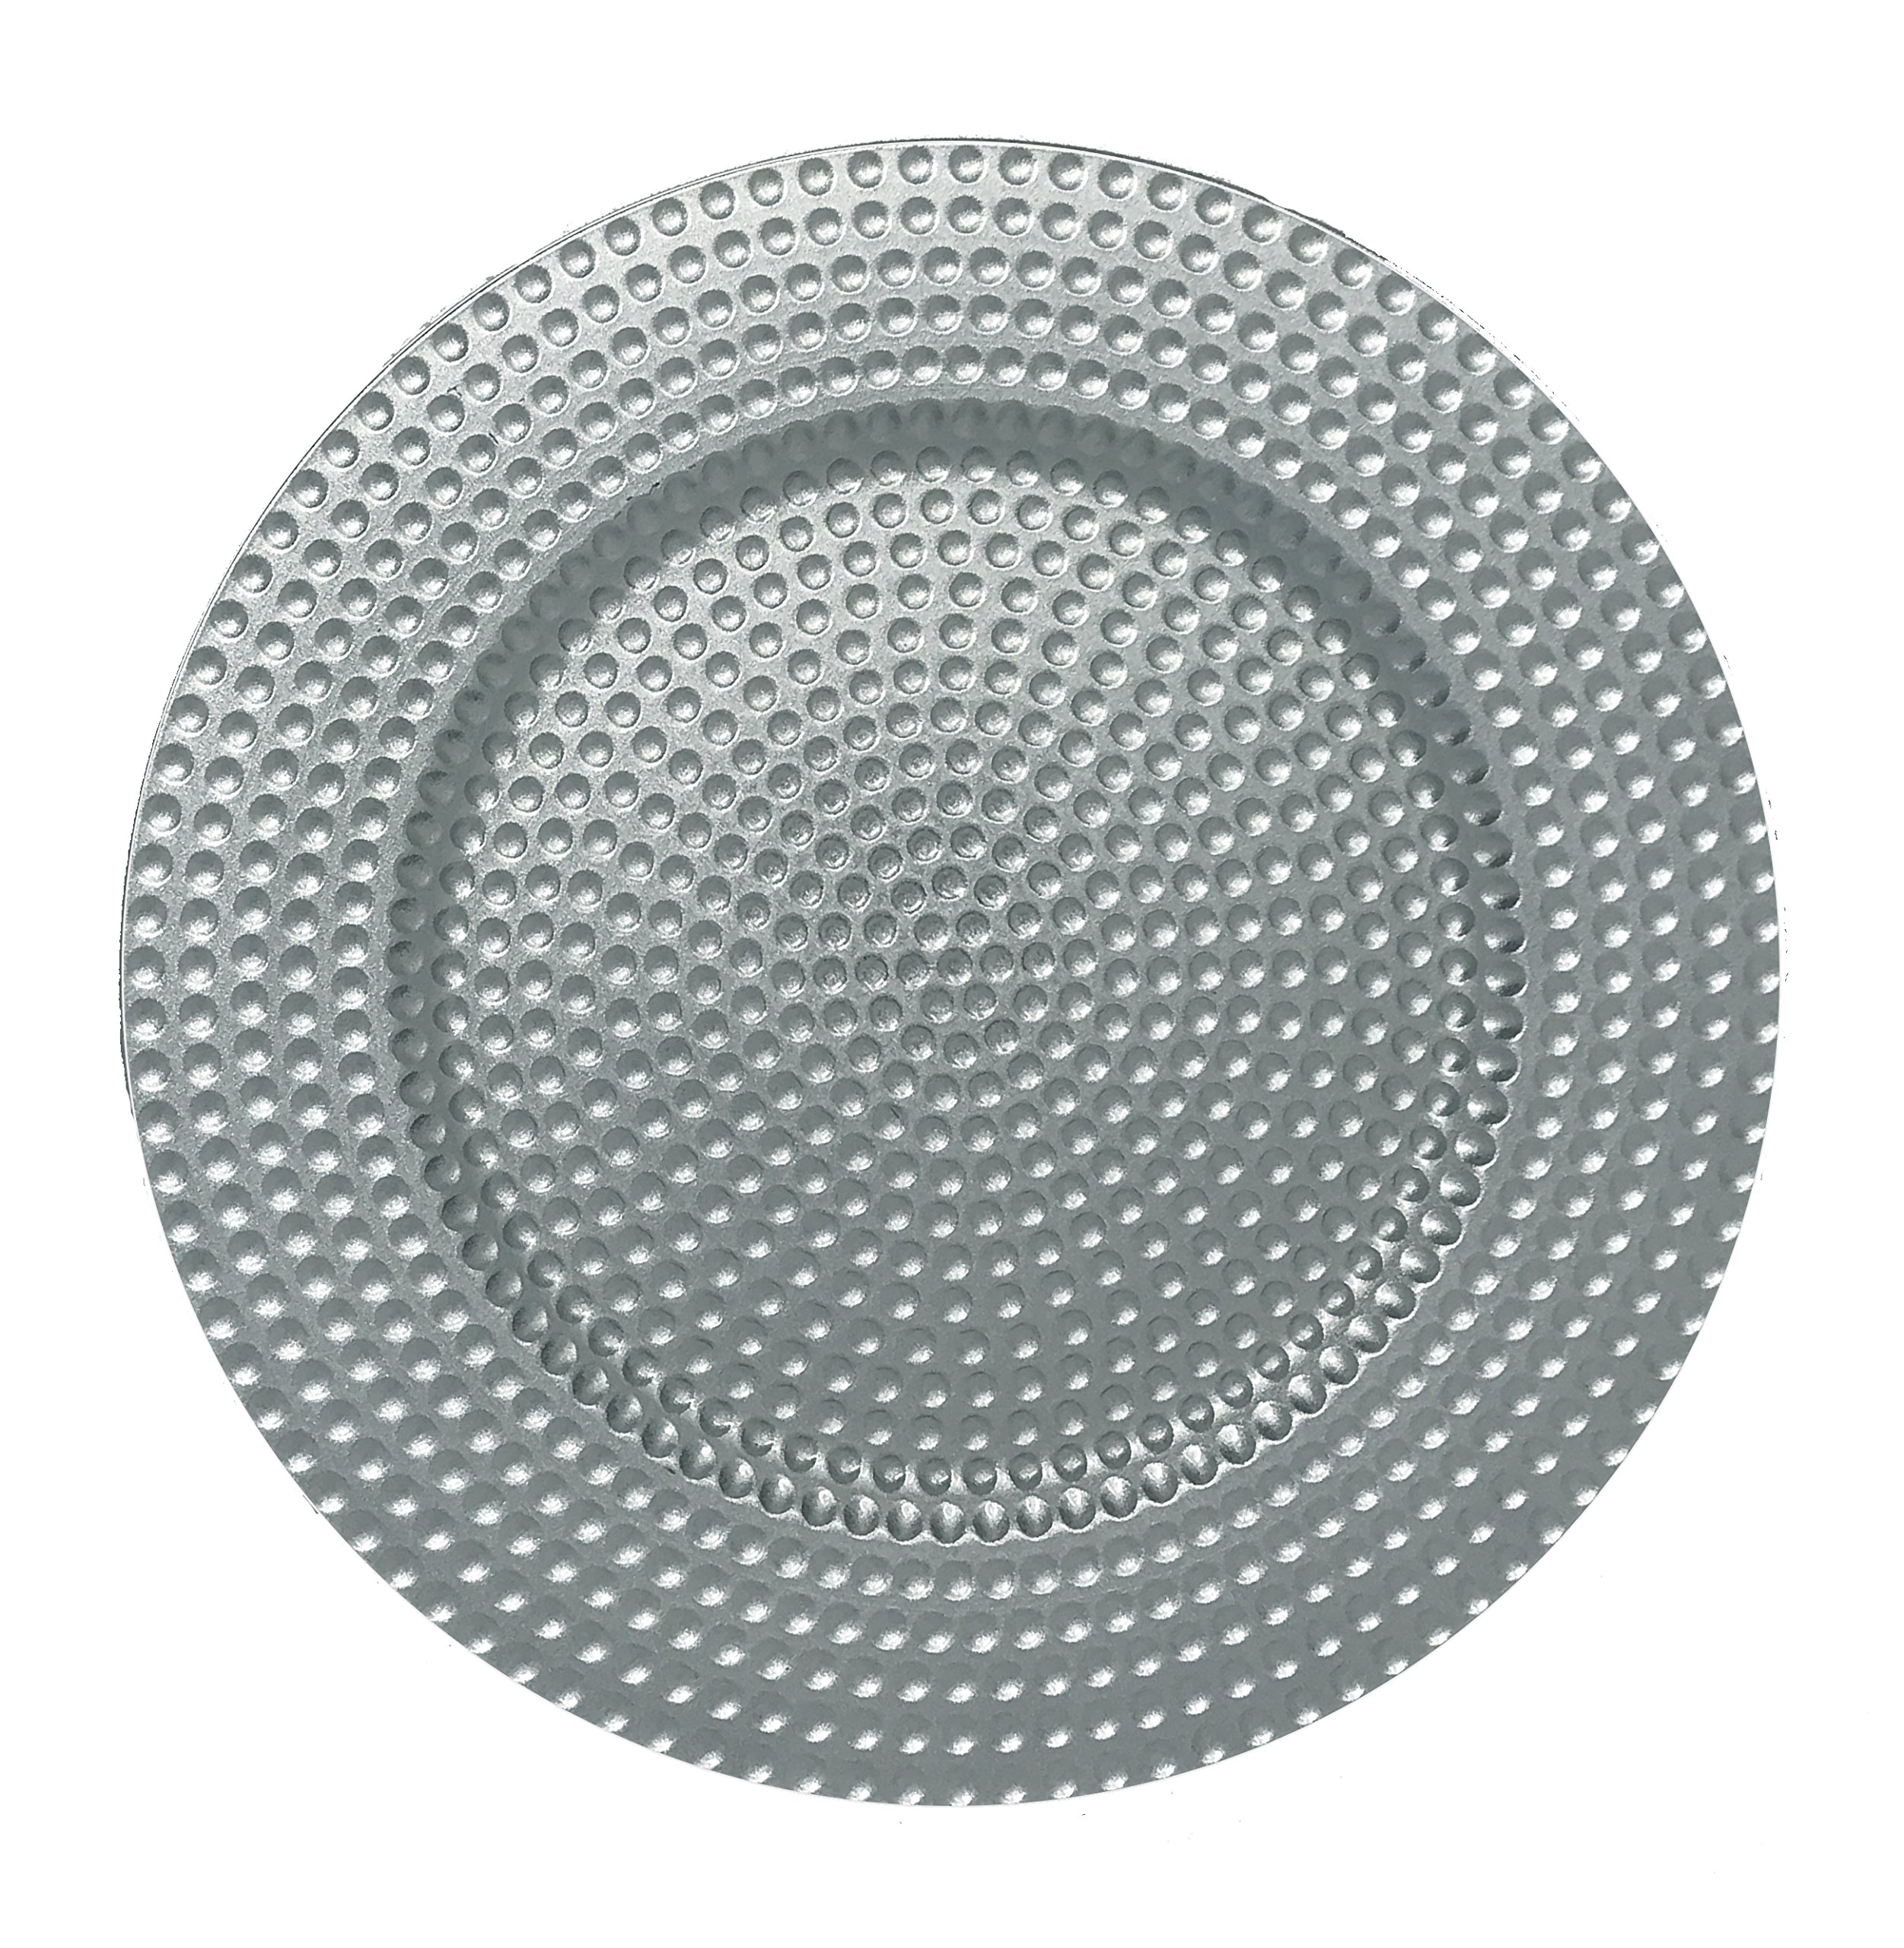 AK-Trading - Set of 12, Premium Finest Quality Party Plate Chargers, 13-Inch Round, Silver Hammered Design